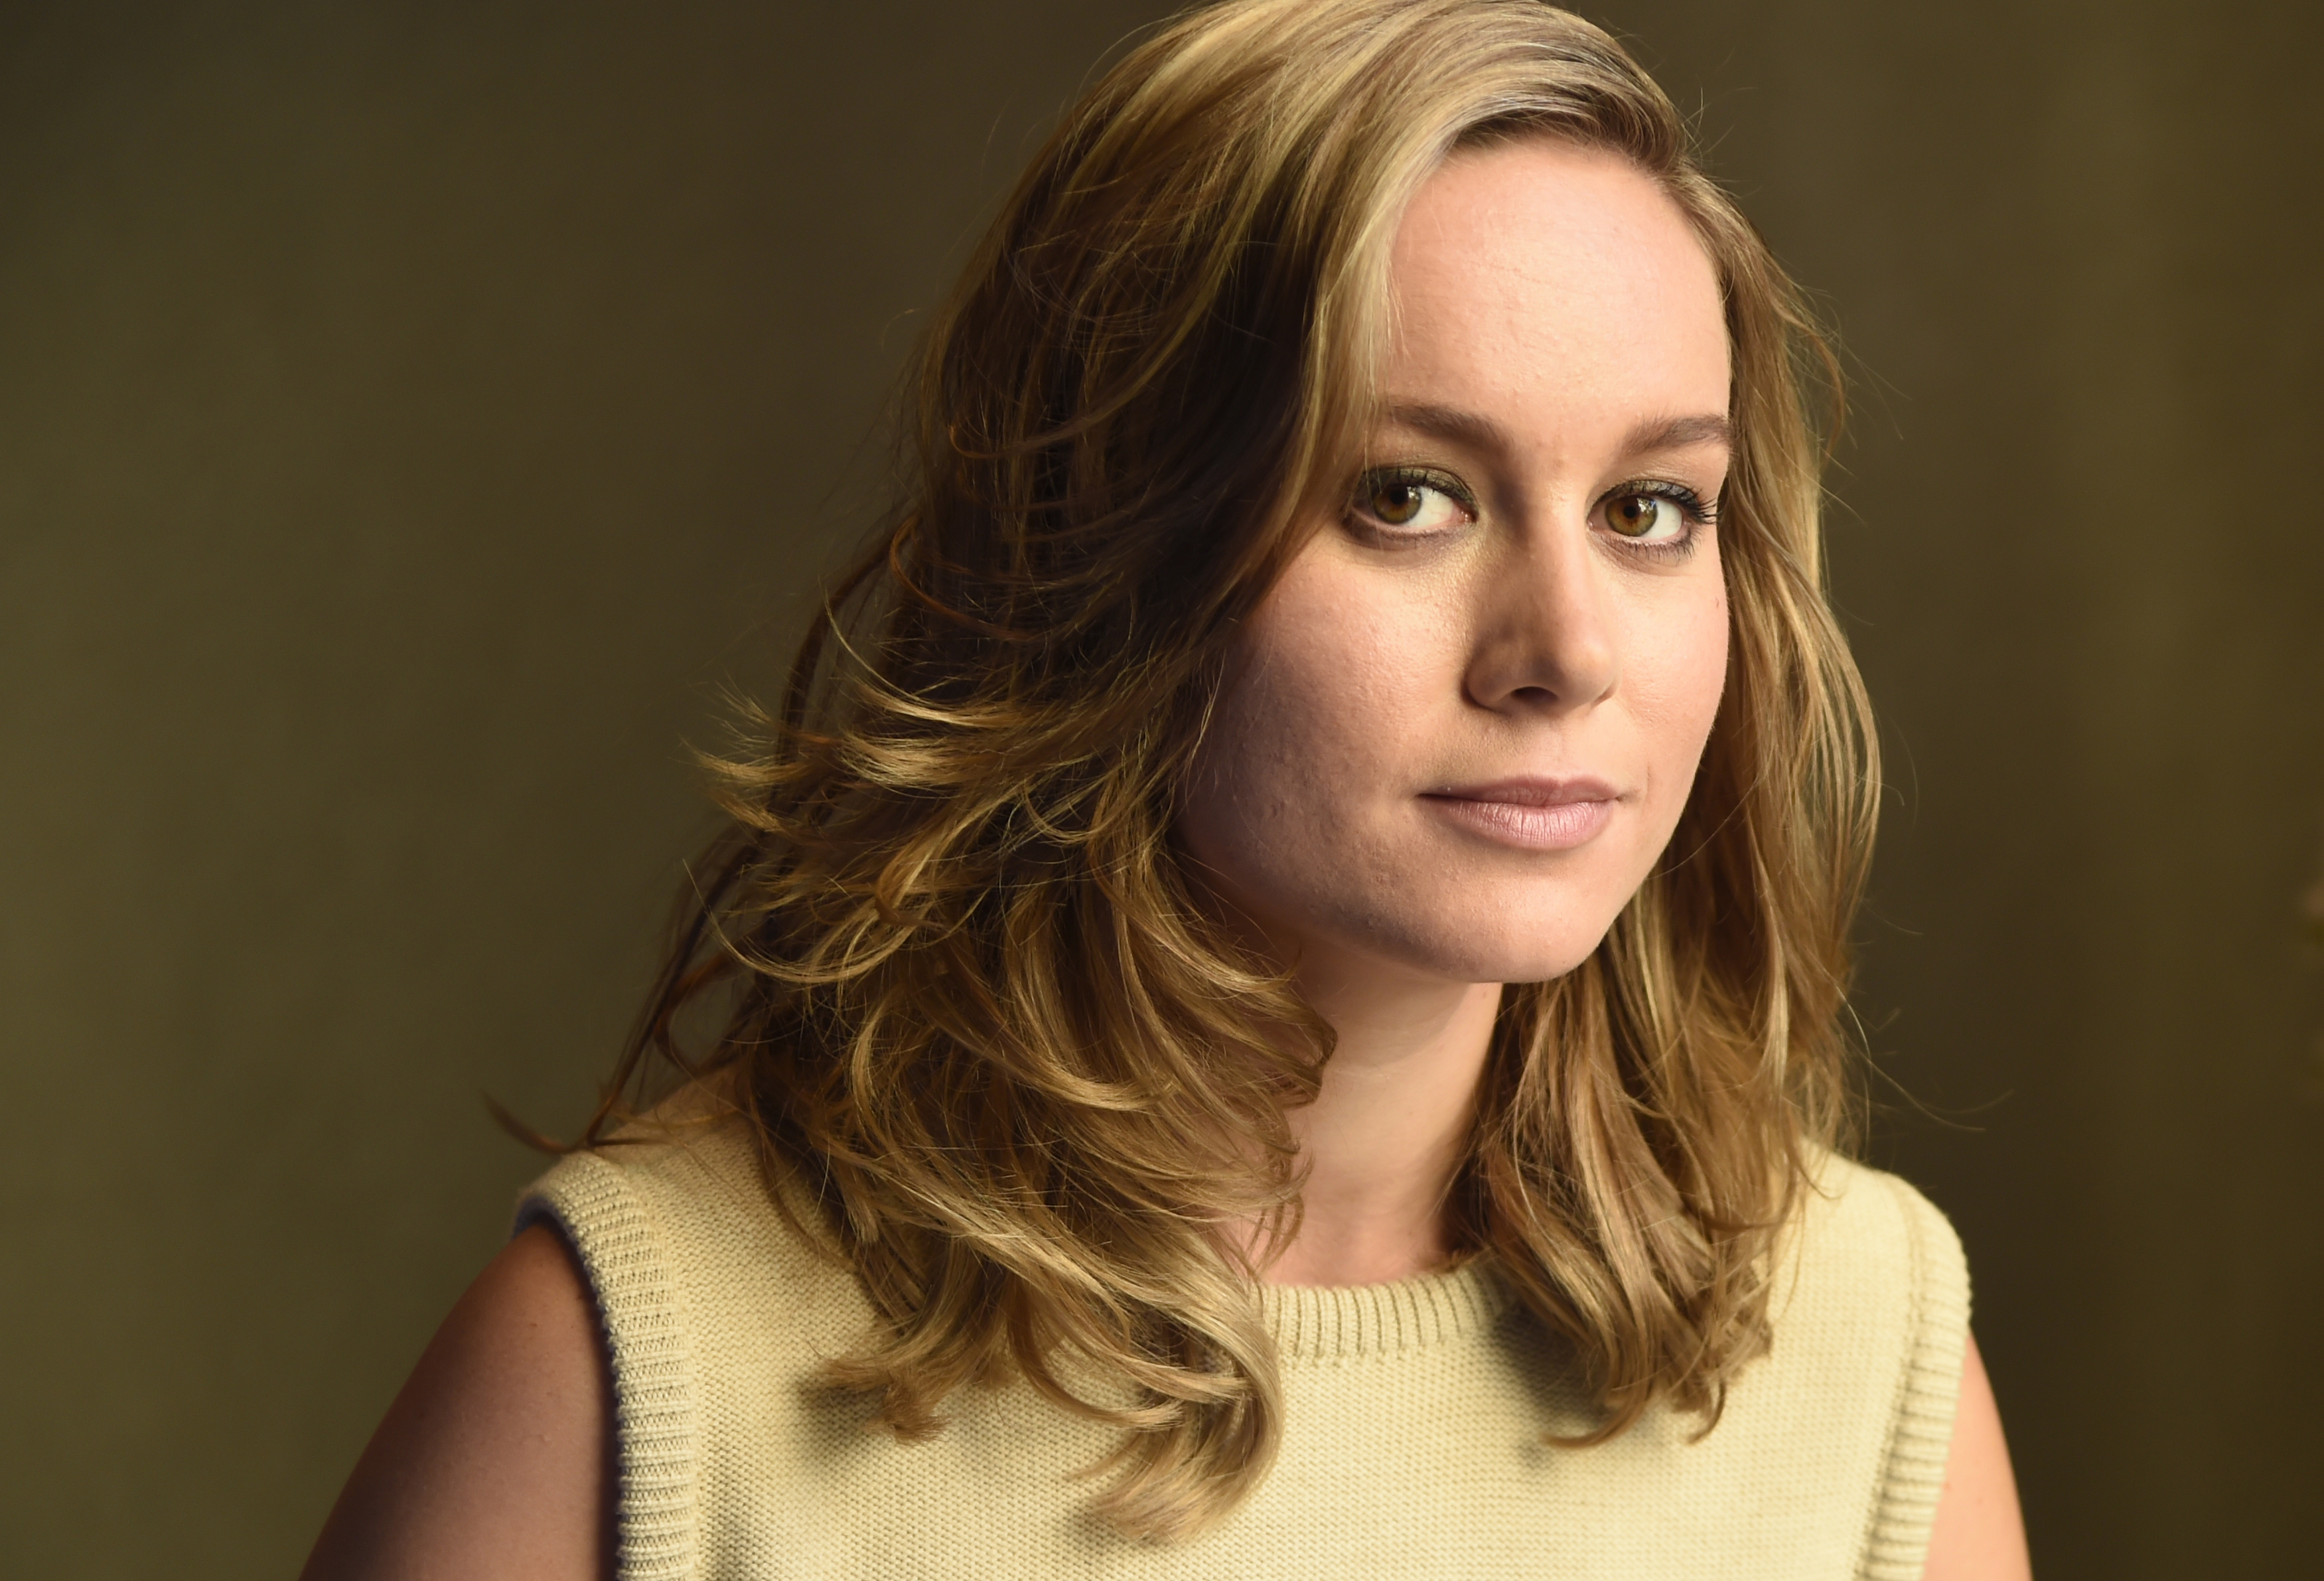 Brie Larson Confirmed as Captain Marvel, Kevin Feige Responds!